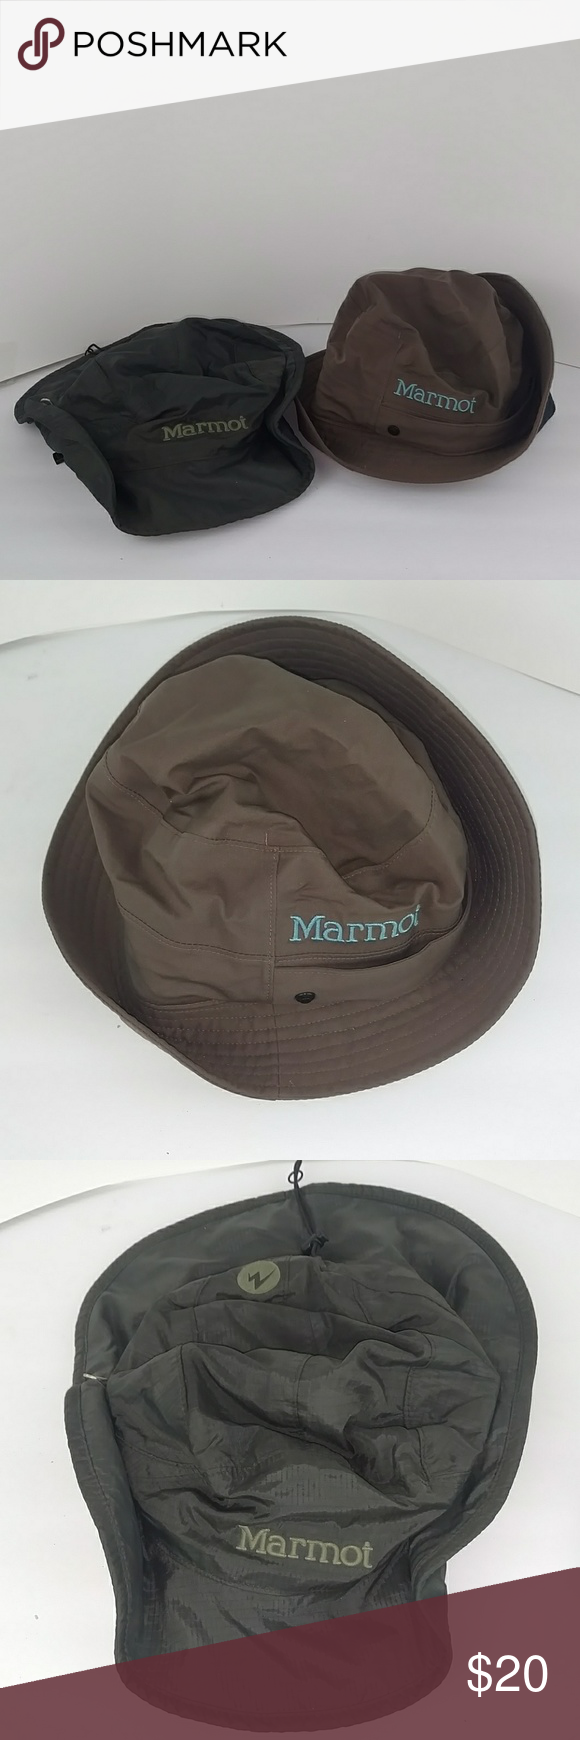 Two Marmot Bucket Style Hats Two Marmot Bucket Style Outdoors Hats 1st   Darker Green Color With Magnet Fittings Size M 2nd  Brown With Blue Logo  Size Sm M ... 76c7901c823